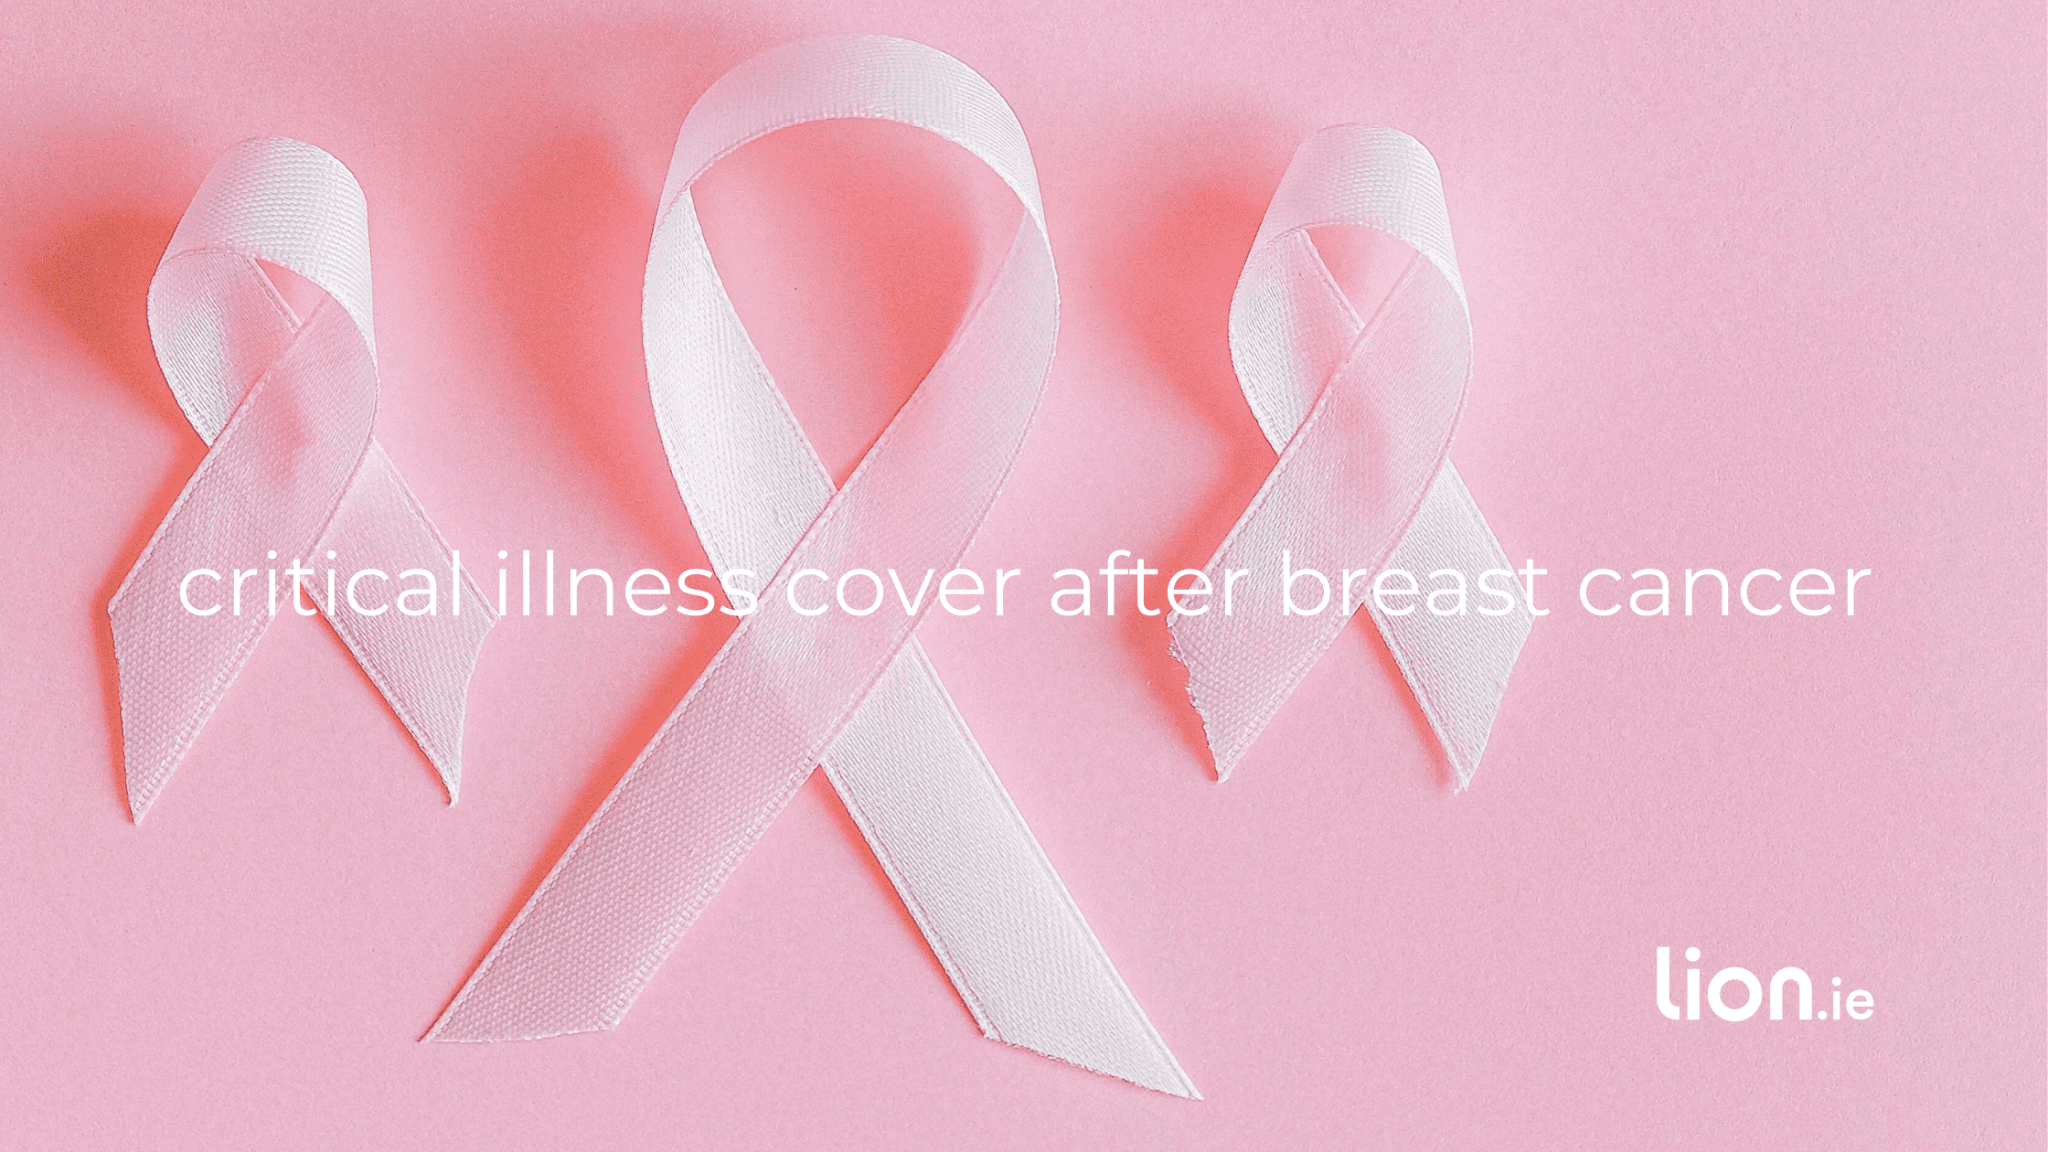 critical illness cover after breast cancer